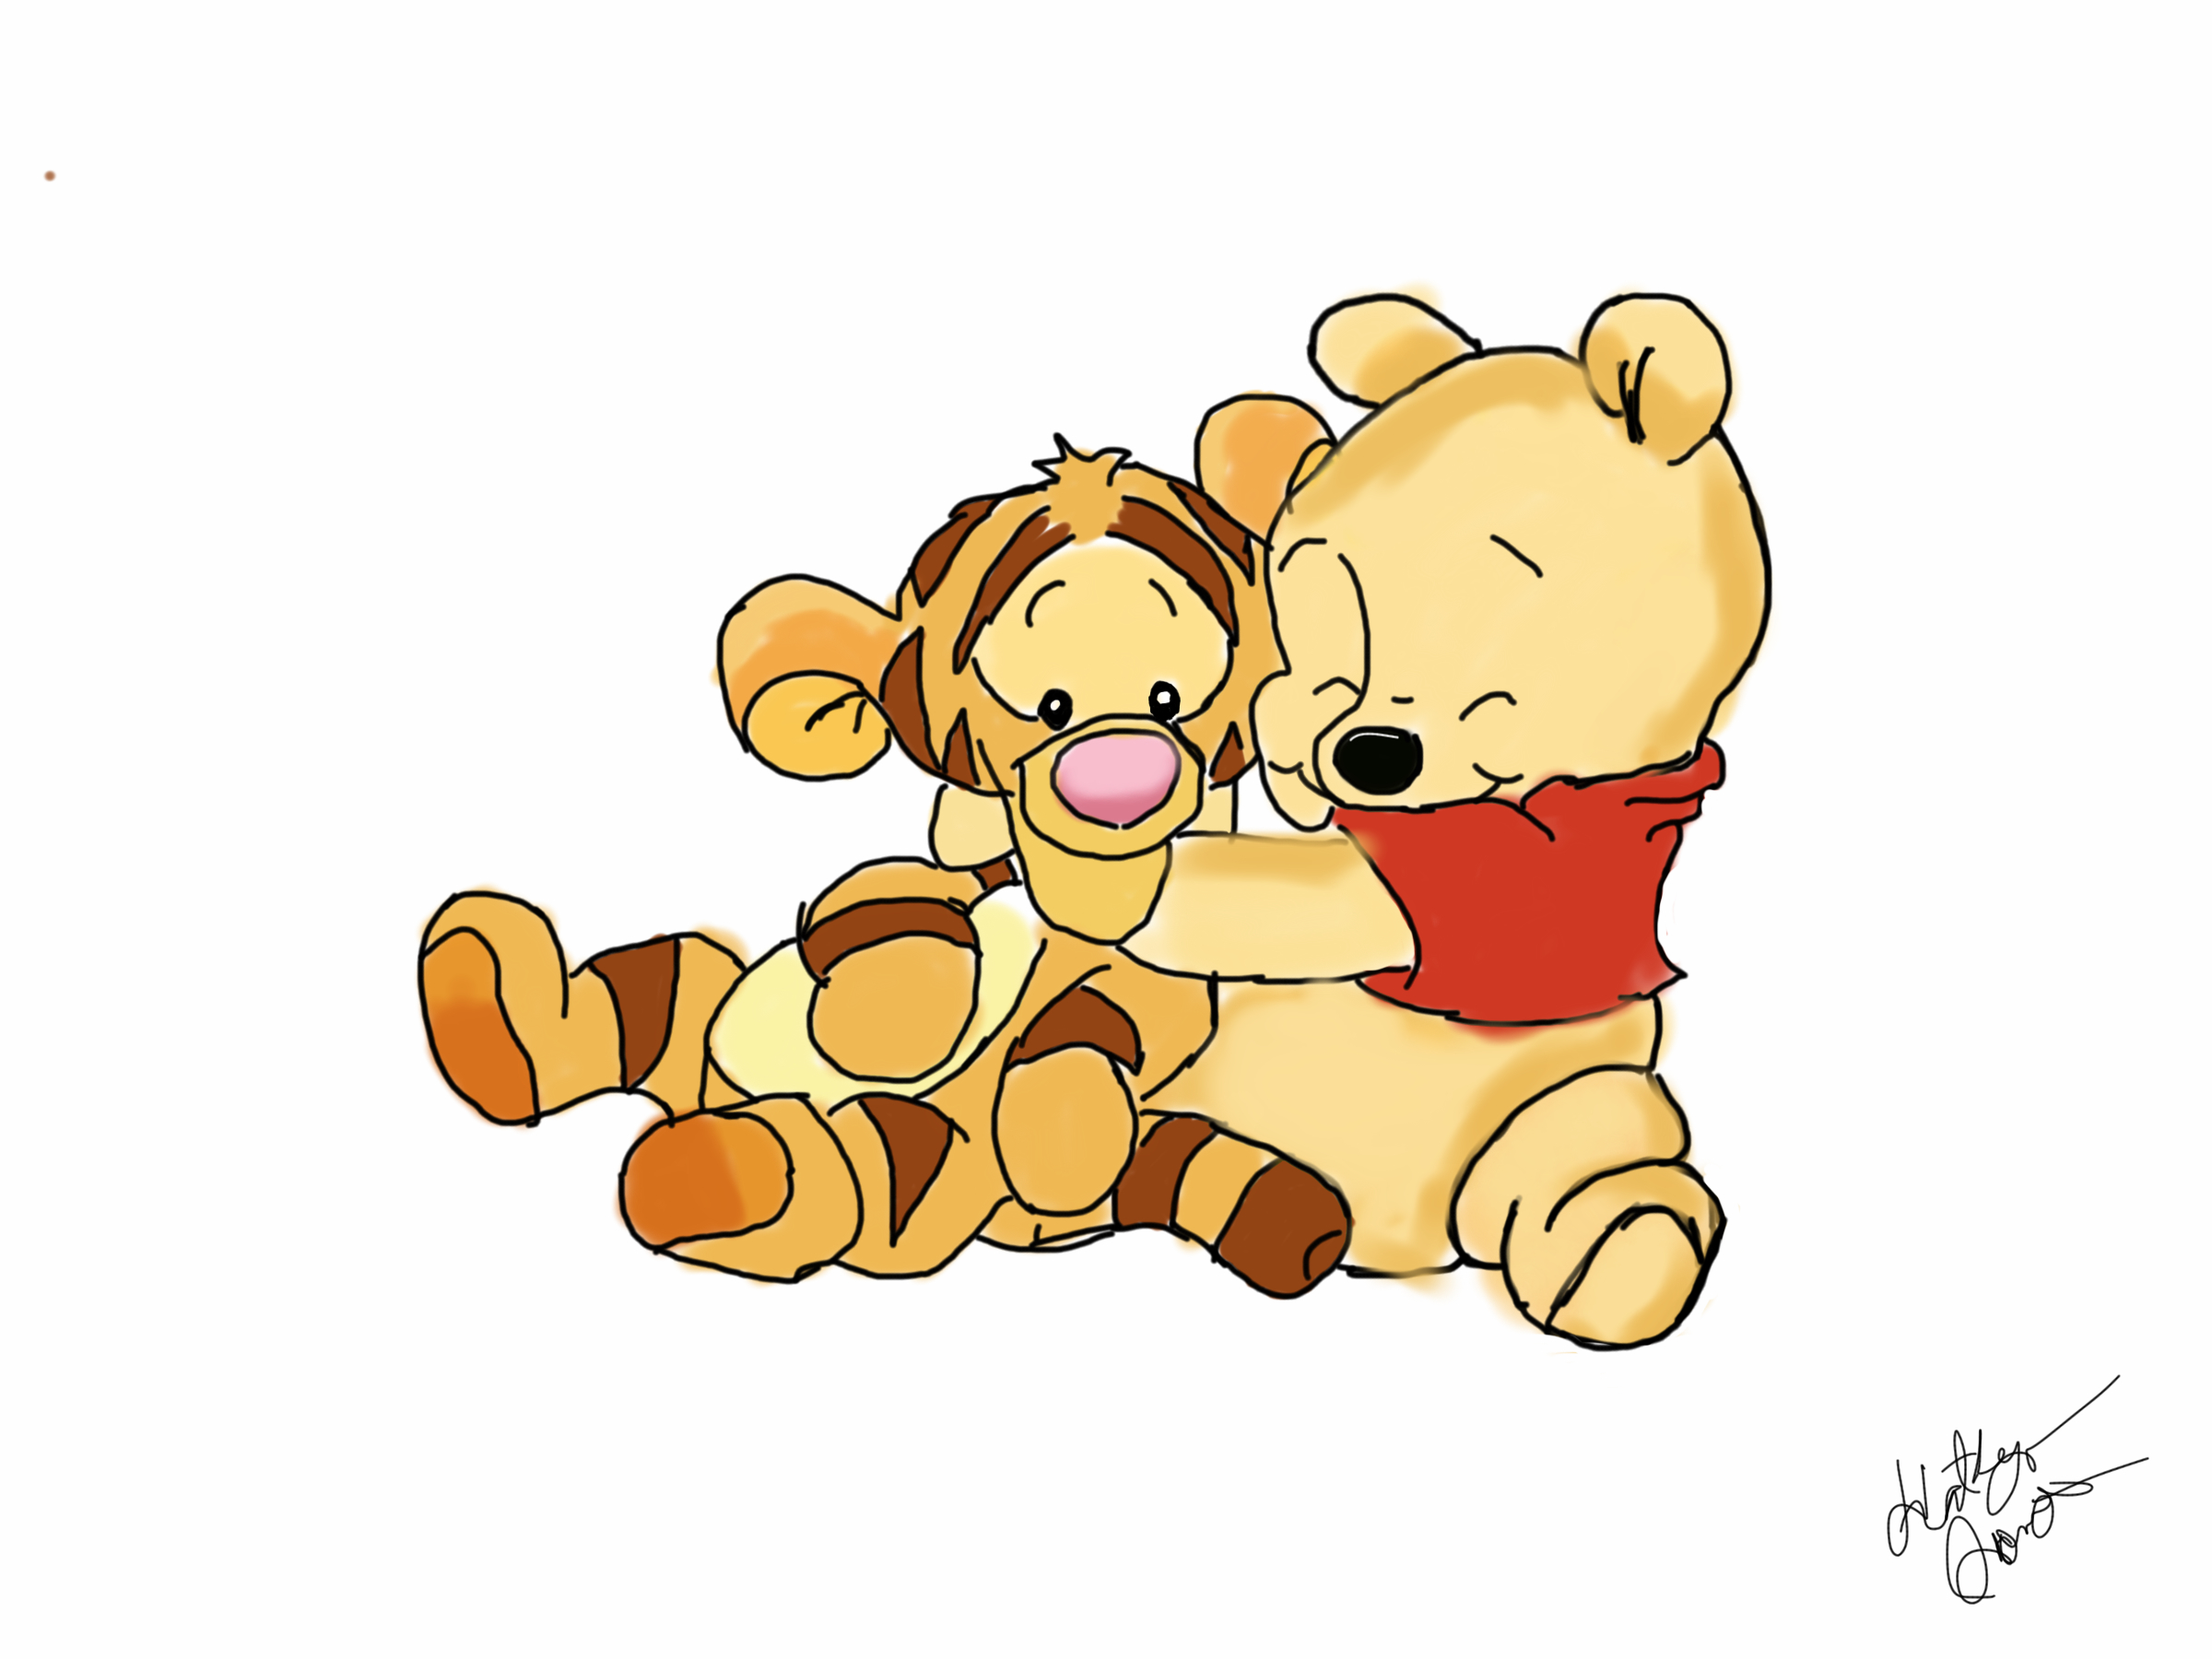 baby pooh drawing at getdrawings | free for personal use baby